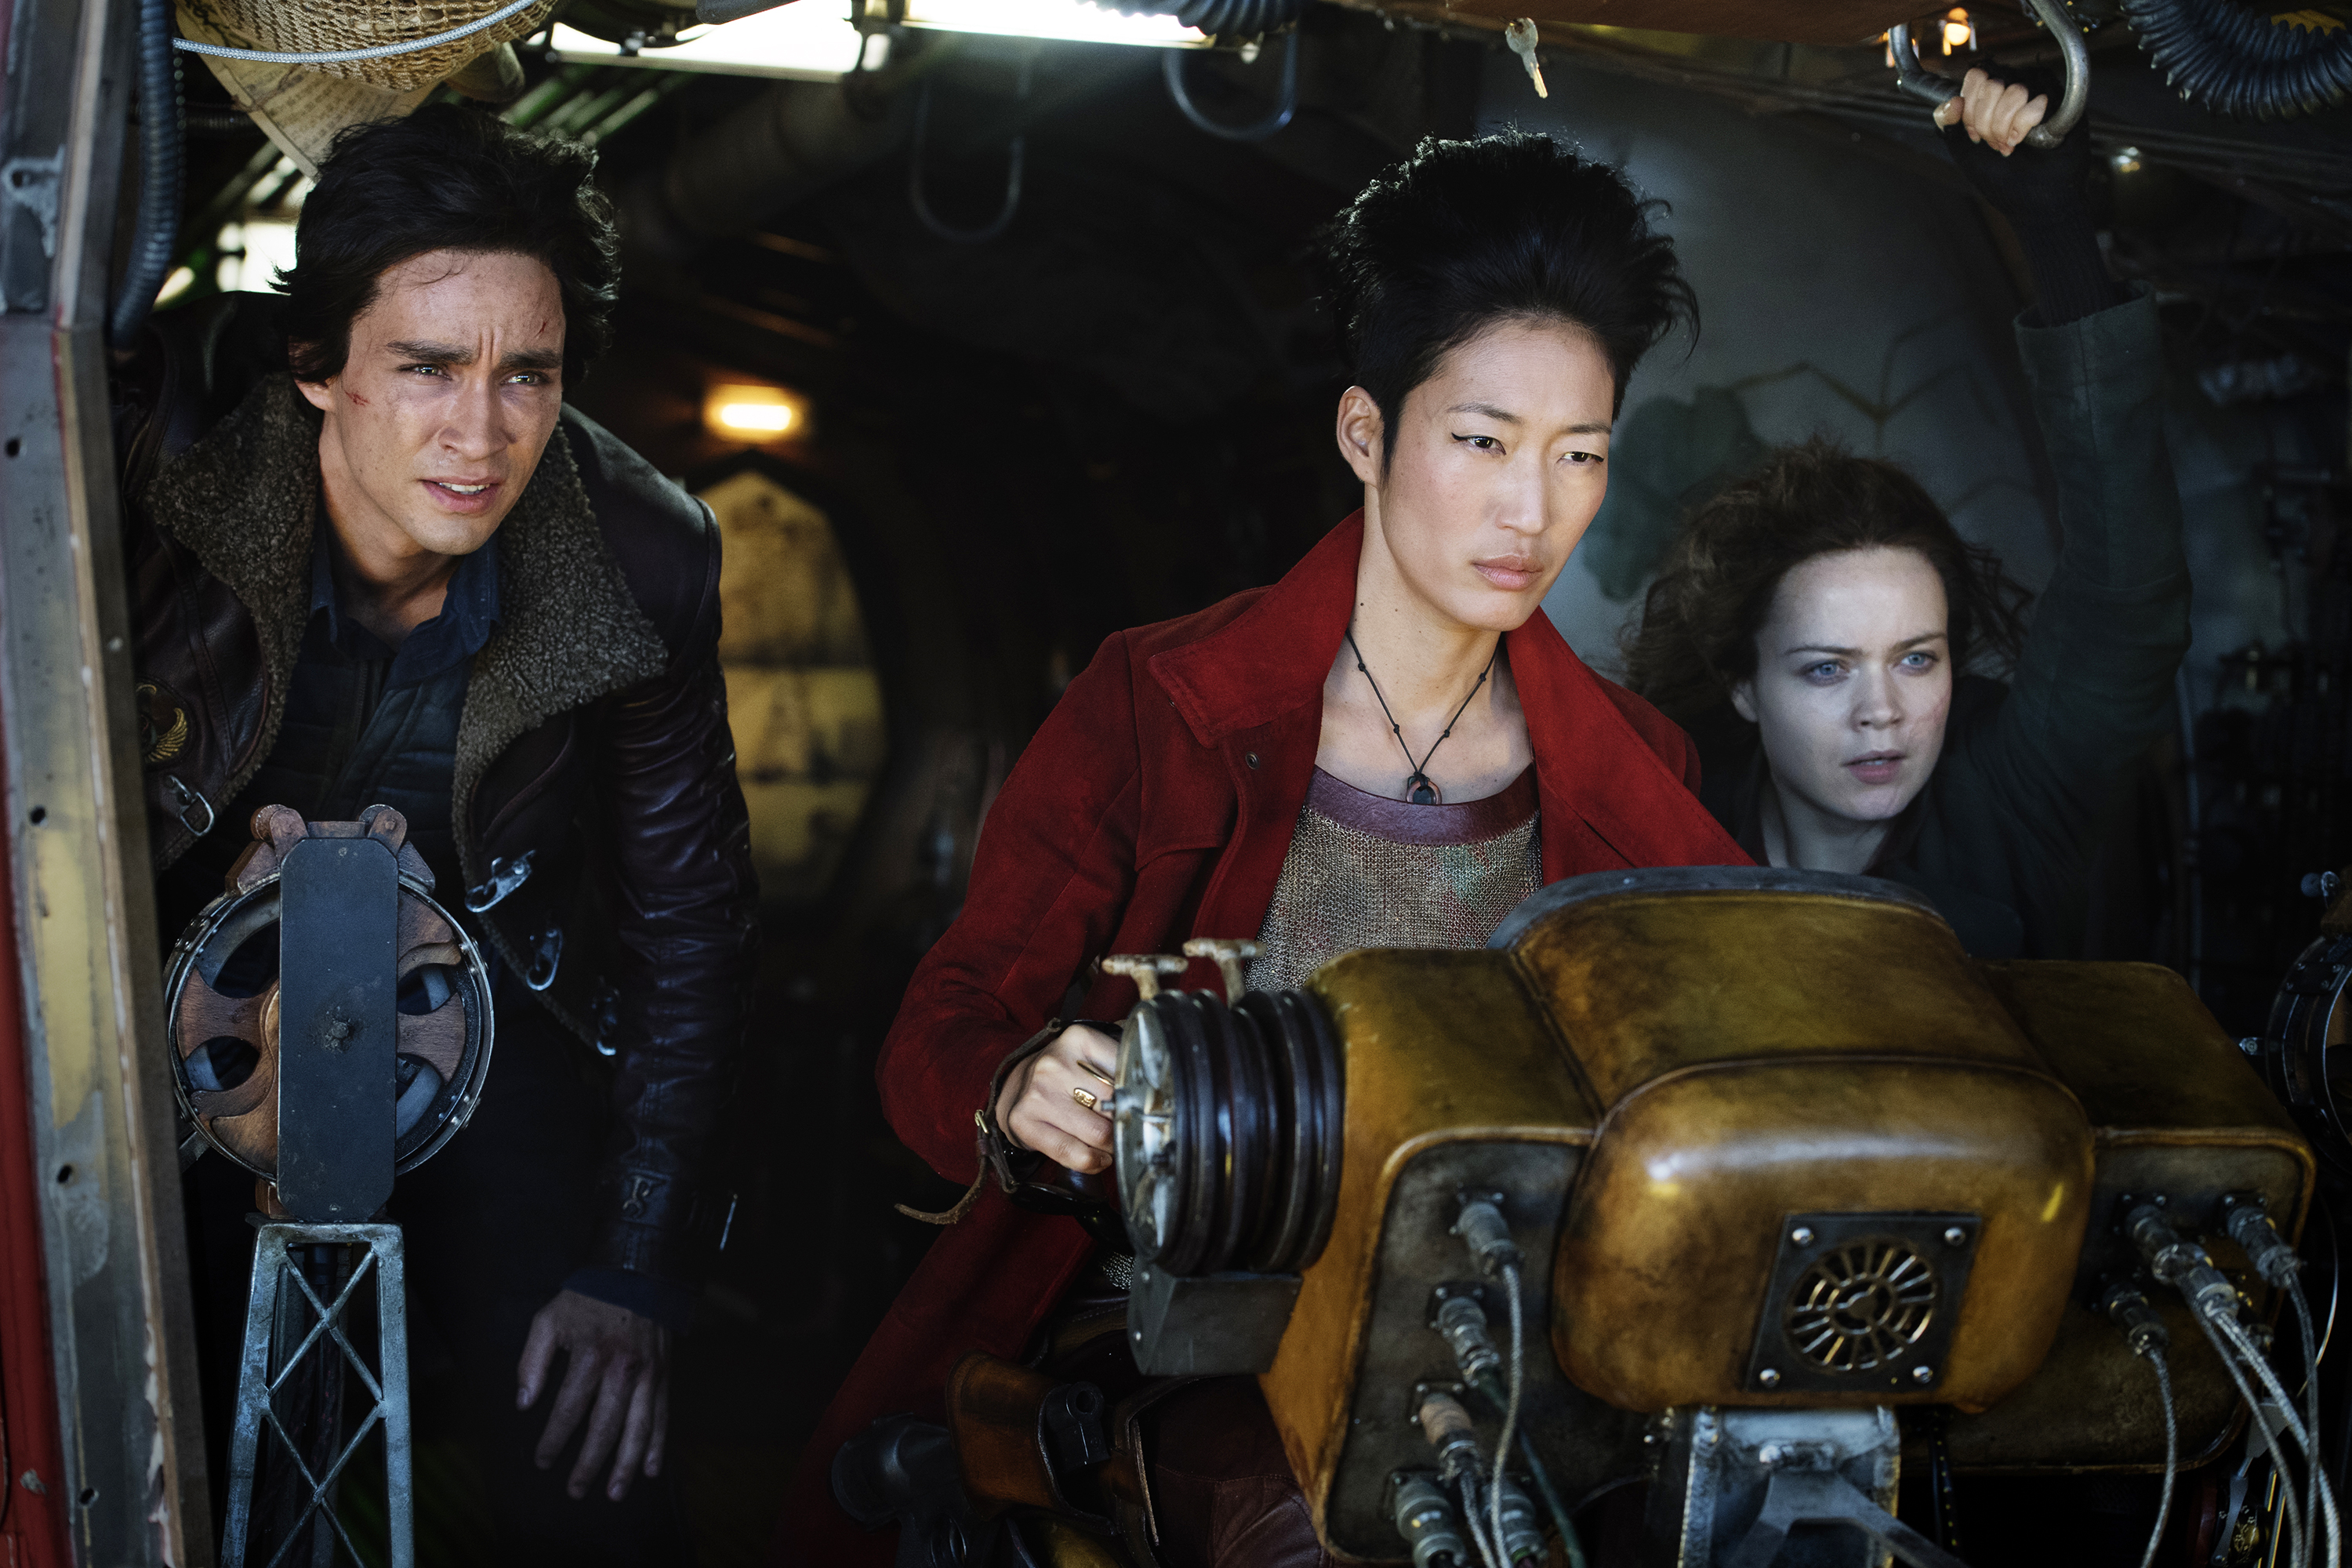 """(from left) Robert Sheehan as Tom Natsworthy, Jihae as Anna Fang and Hera Hilmar as Hester Shaw in """"Mortal Engines."""" The film is directed by Christian Rivers, and written by Fran Walsh, Philippa Boyens and Peter Jackson based on the novel by Philip Reeve."""